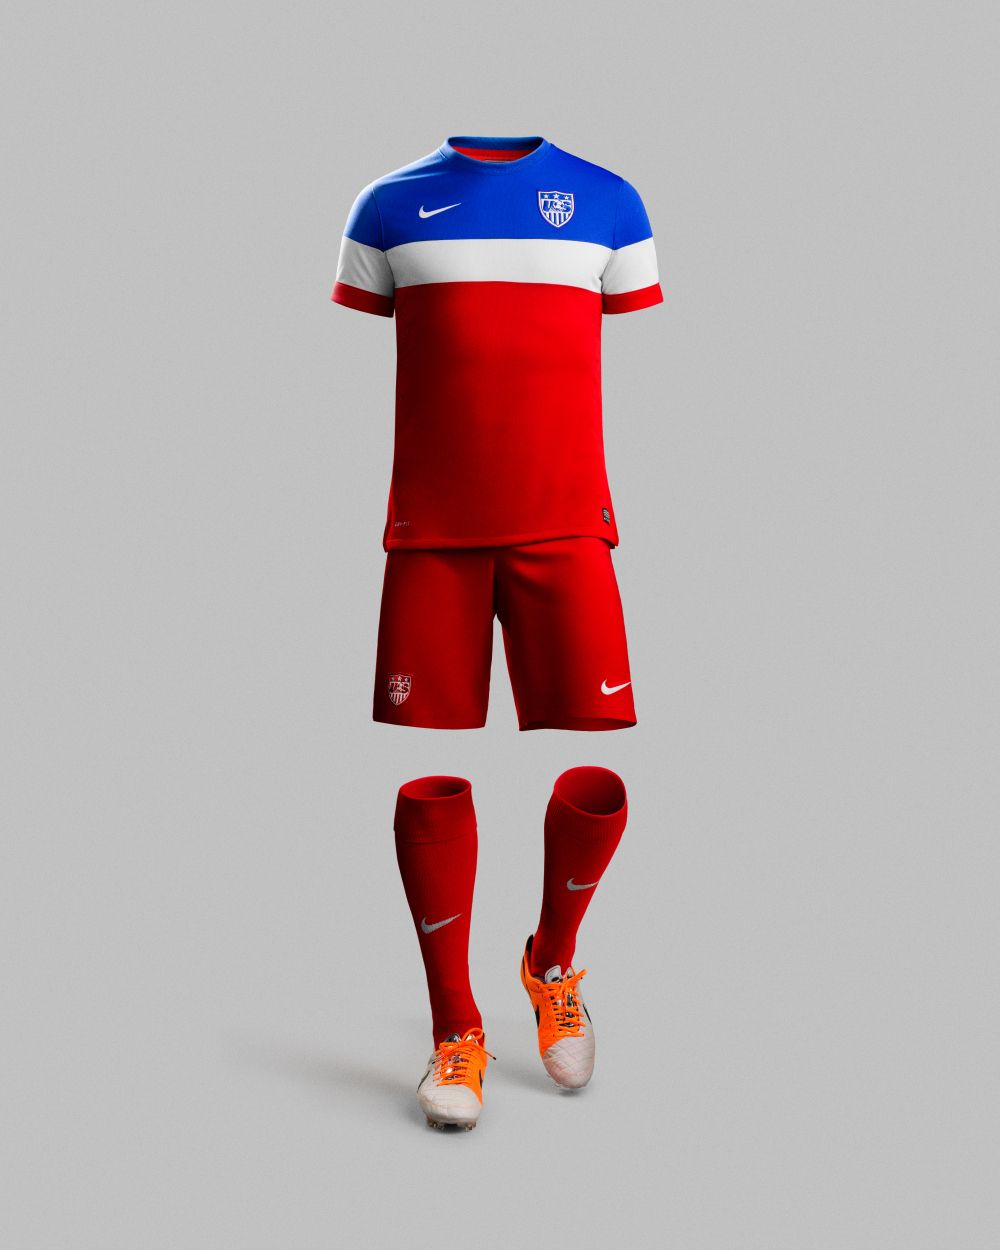 The U.S. national team's second 2014 World Cup jersey ...